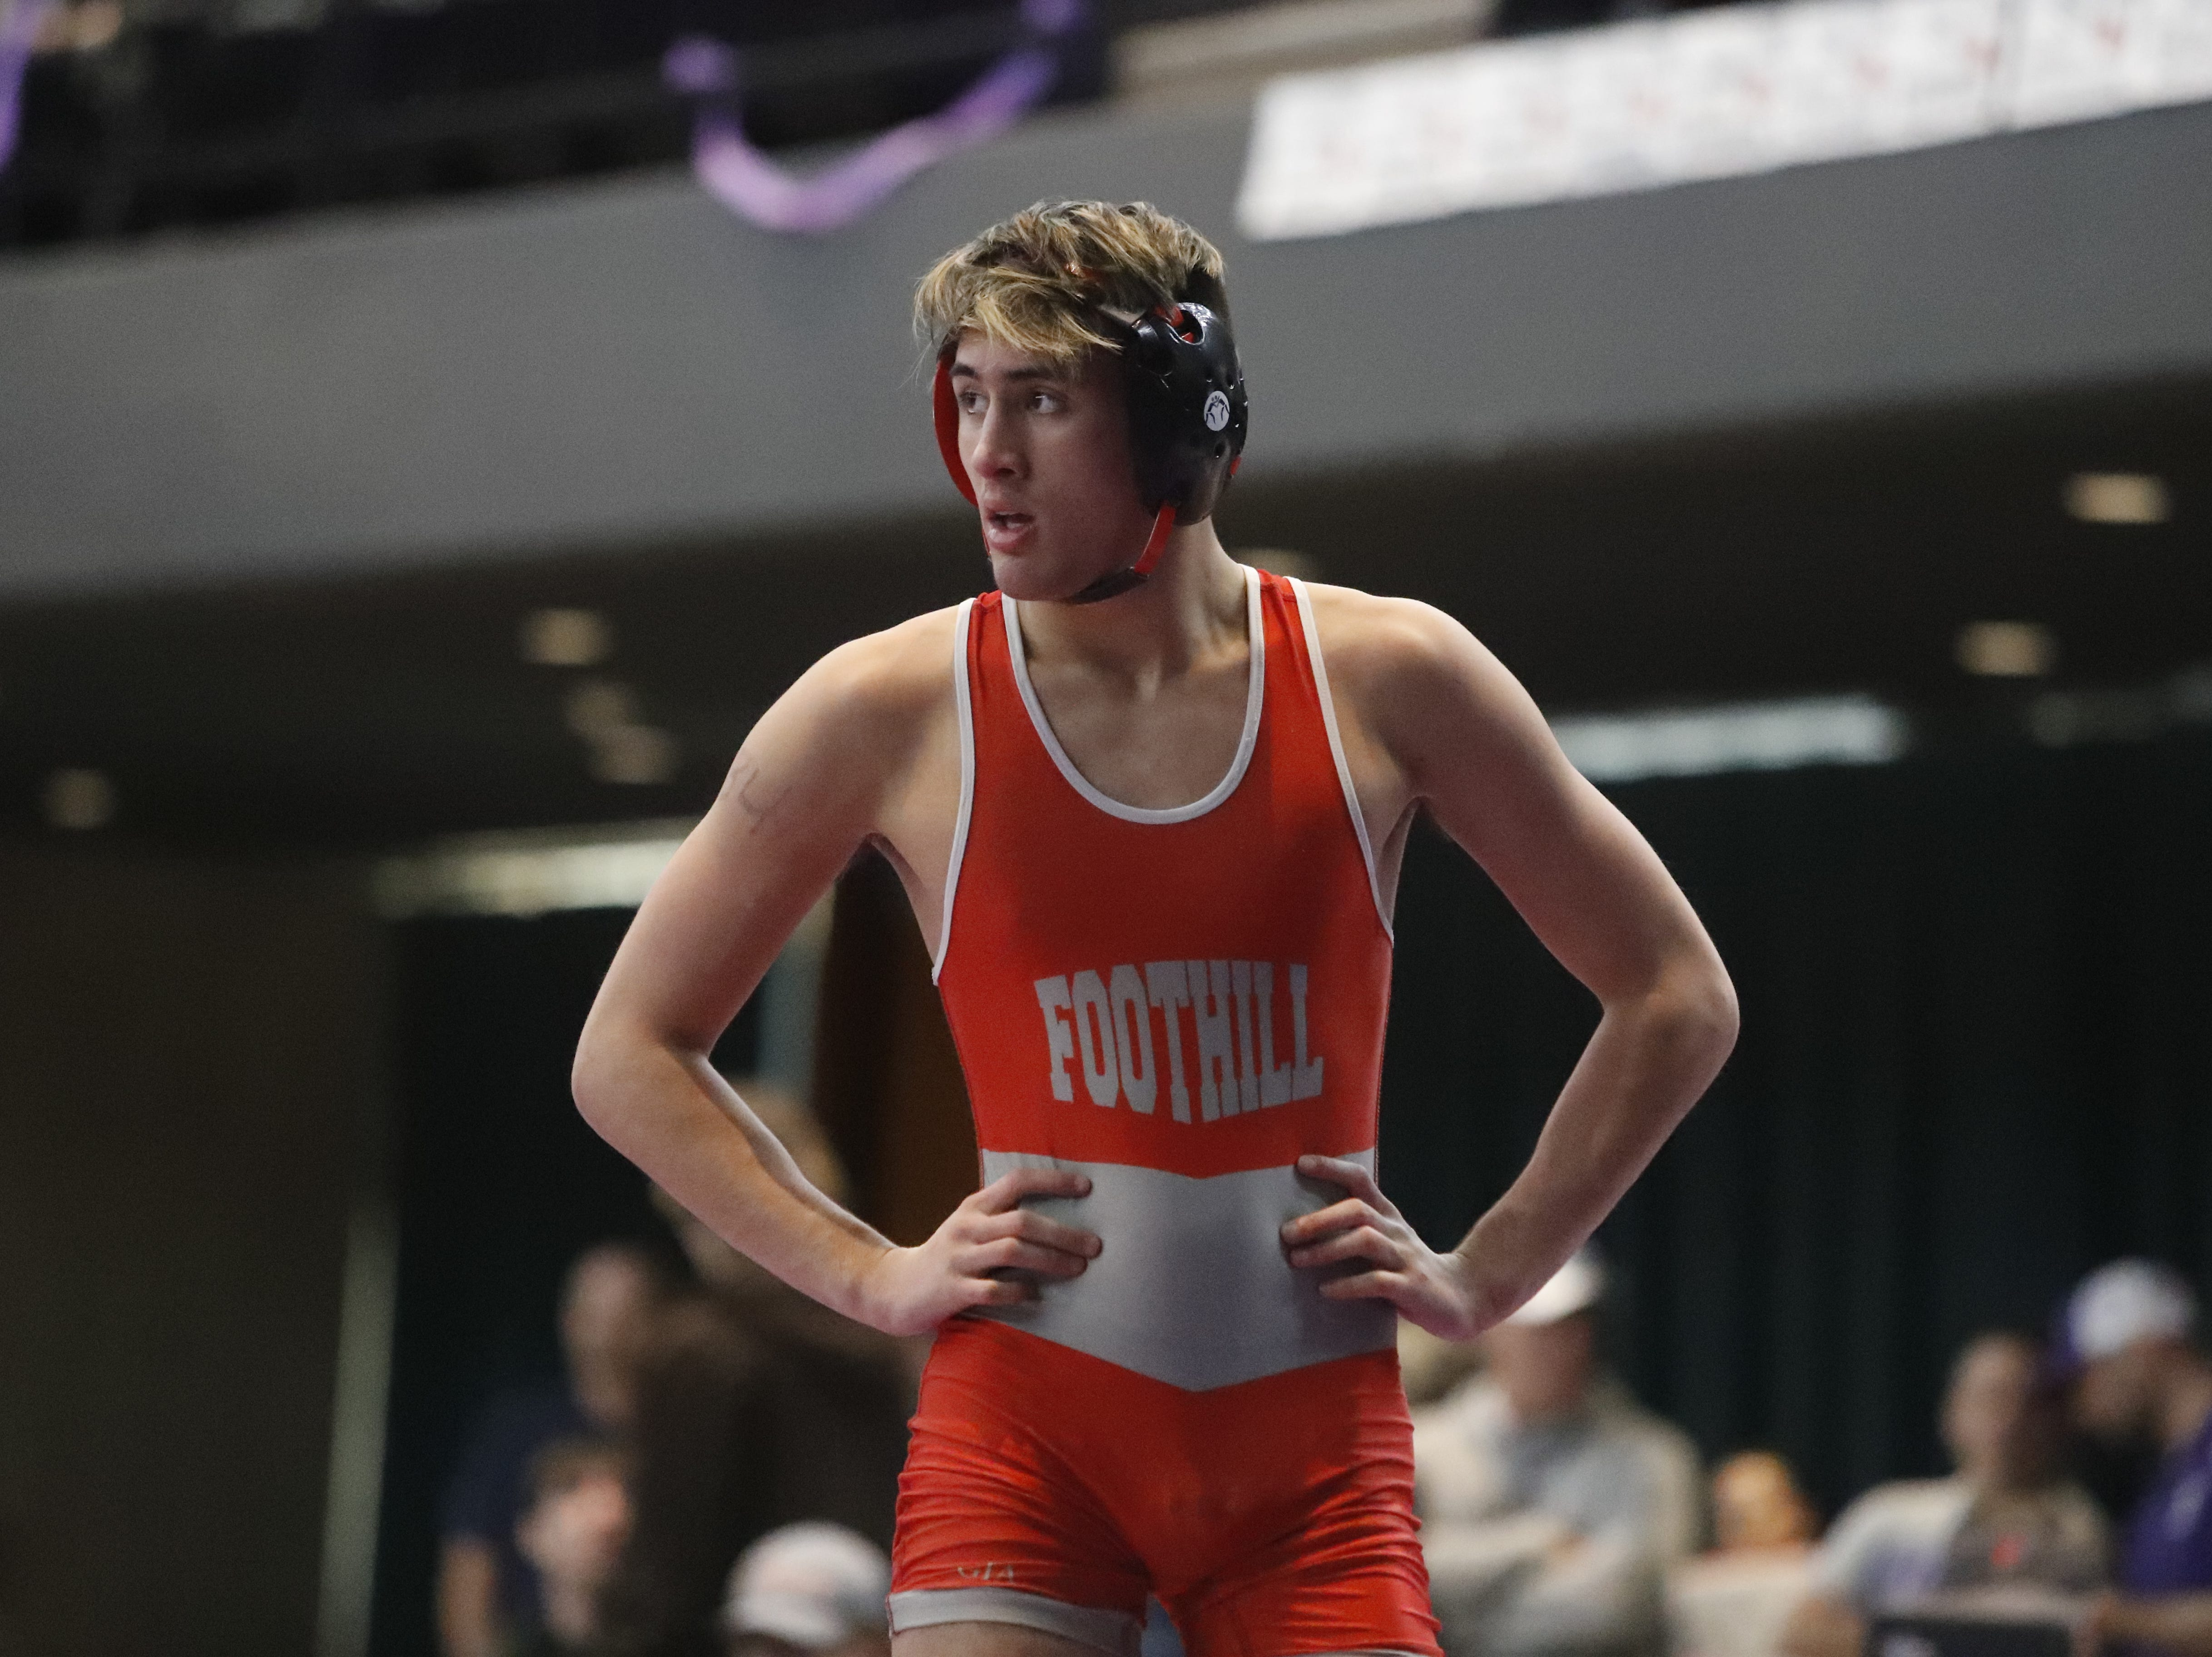 Foothill's Jacob Bergstrom walks around the mat between rounds during the 132-pound semifinals at the Northern Section championships on Friday, Feb. 15, at the Redding Civic Auditorium.